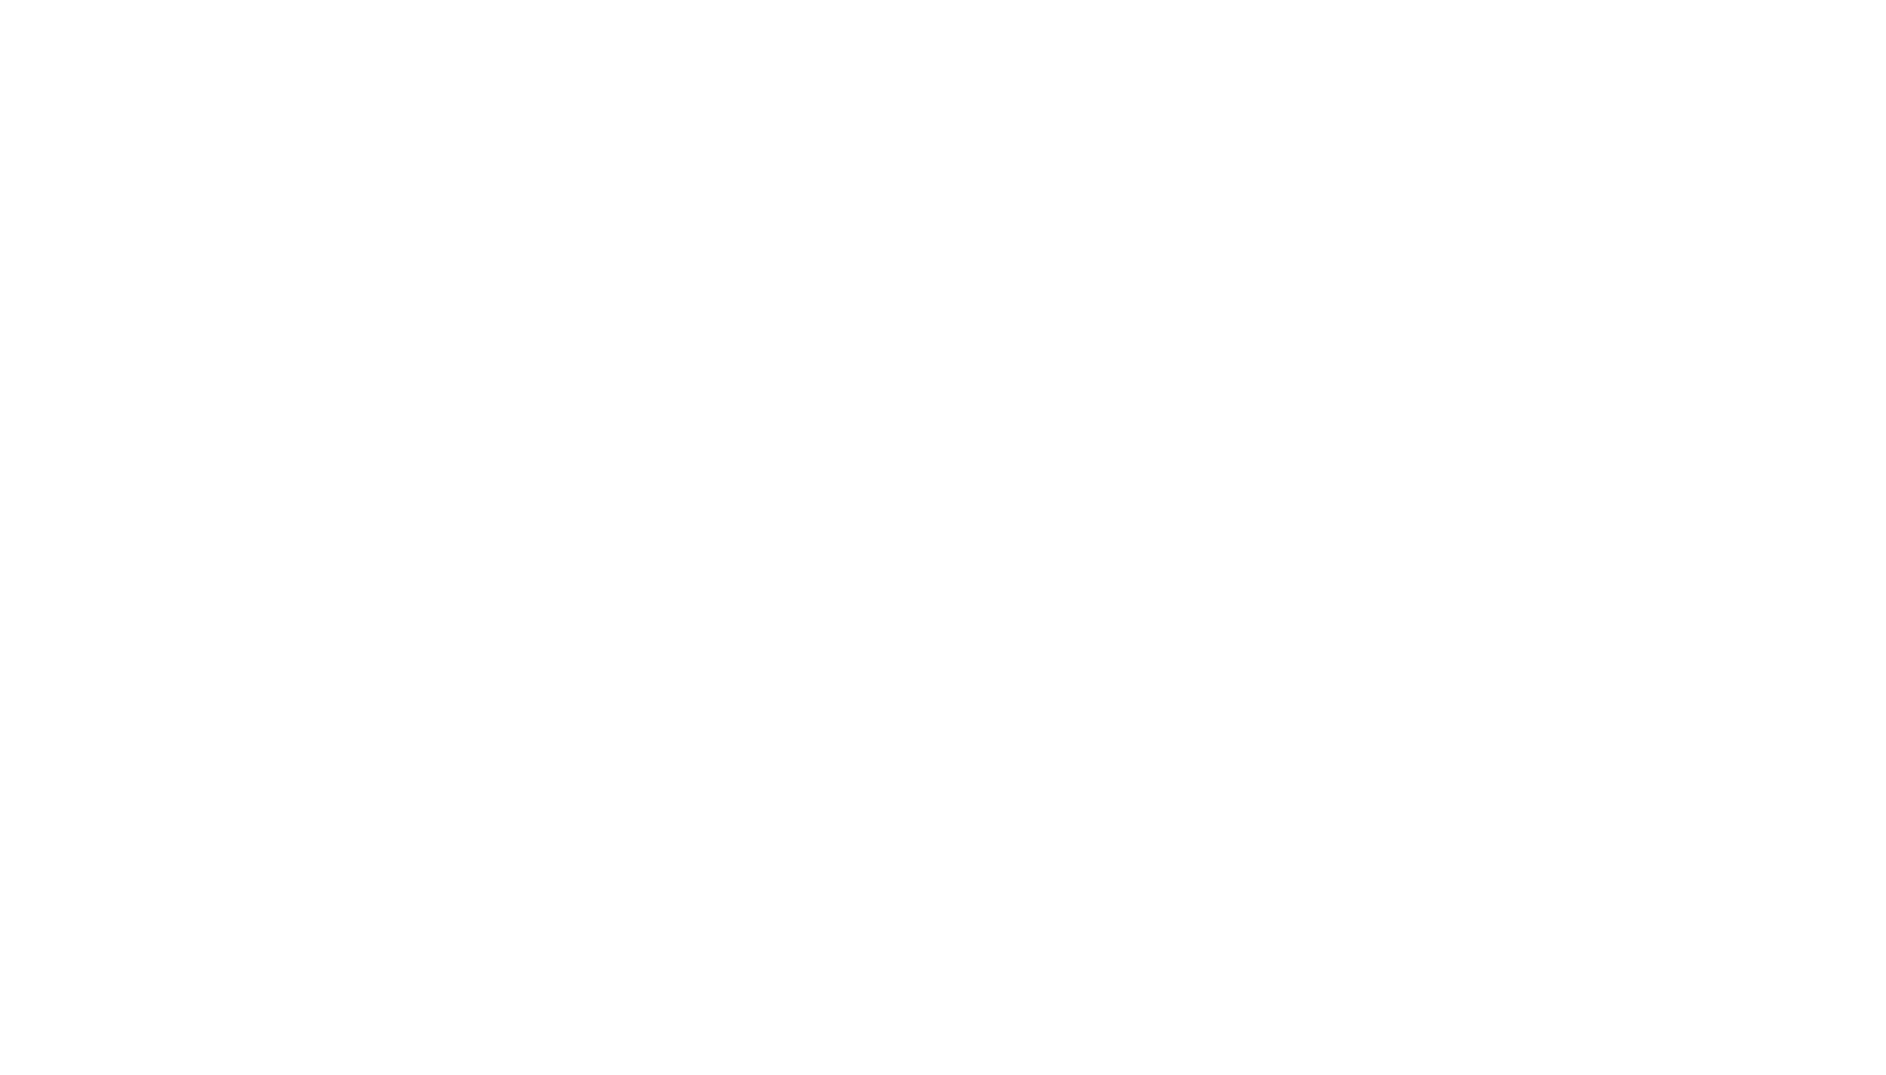 Starlight Concerts